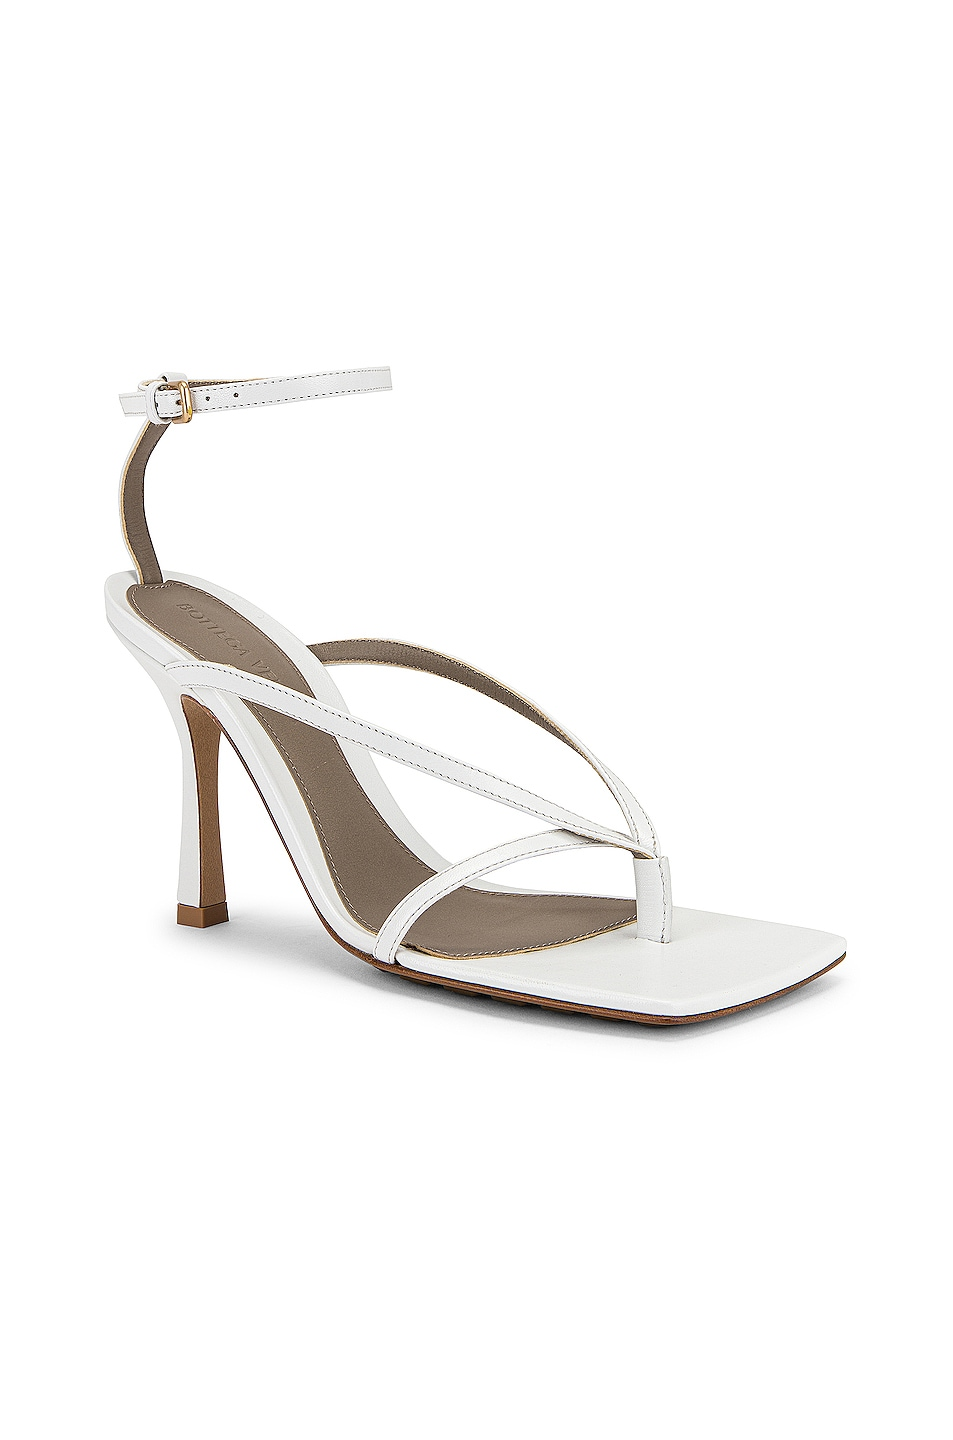 Image 2 of Bottega Veneta Leather Stretch Toe Heels in Optic White